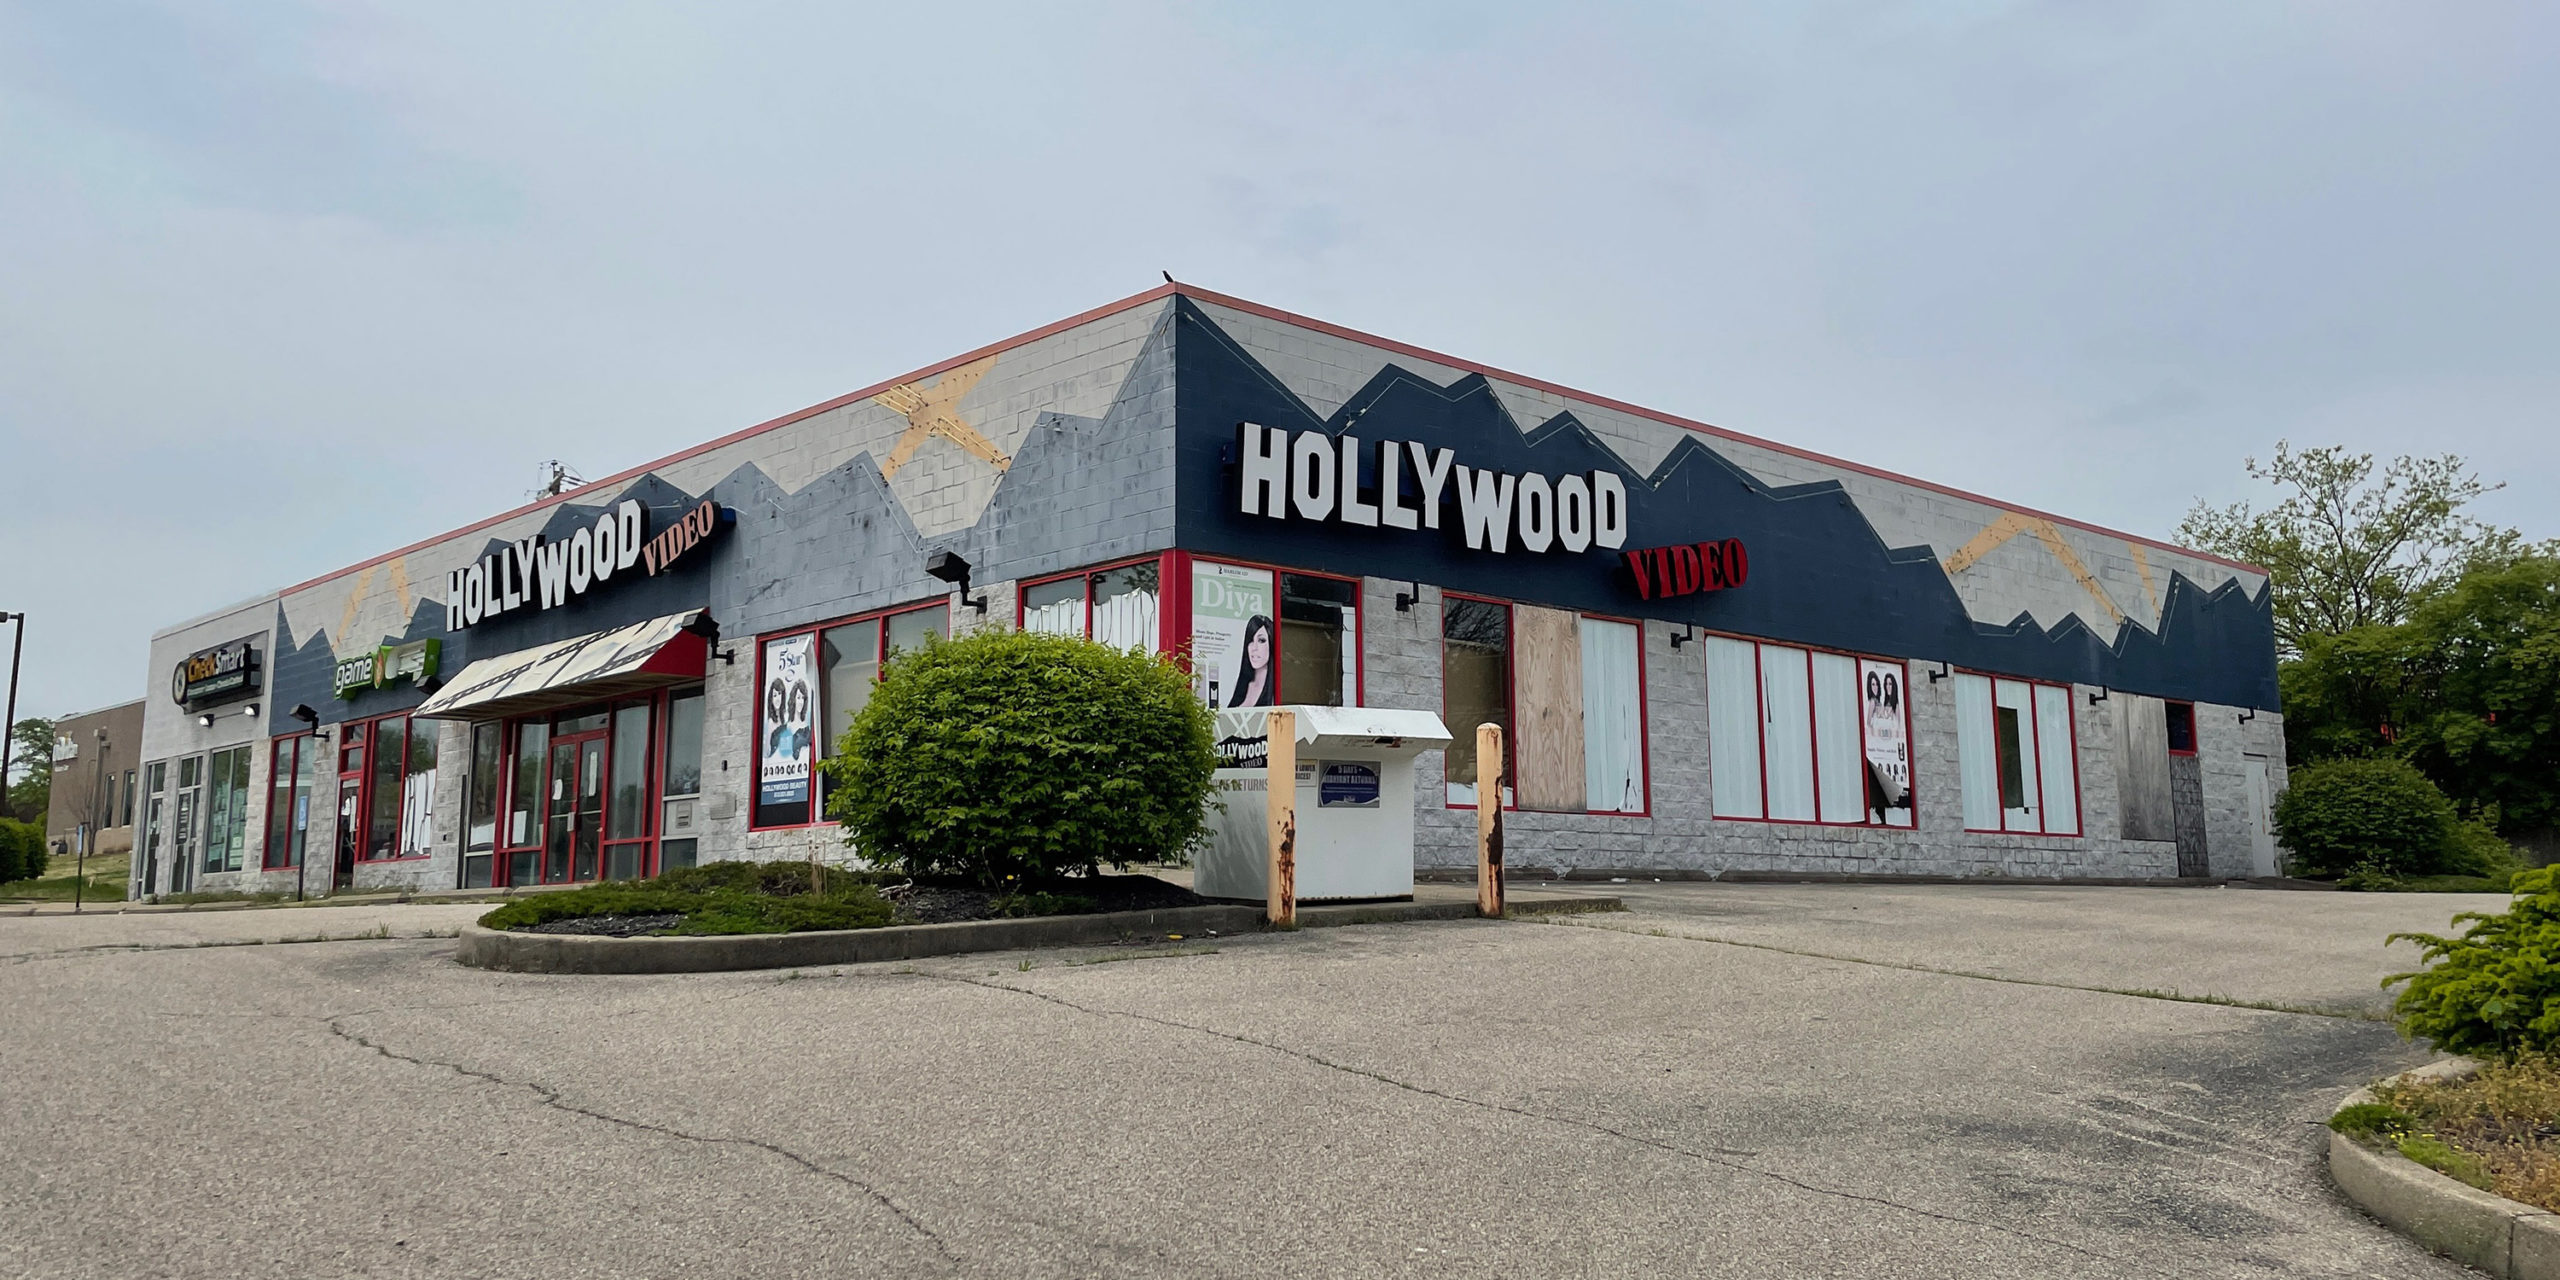 Hollywood video abandoned with video return box